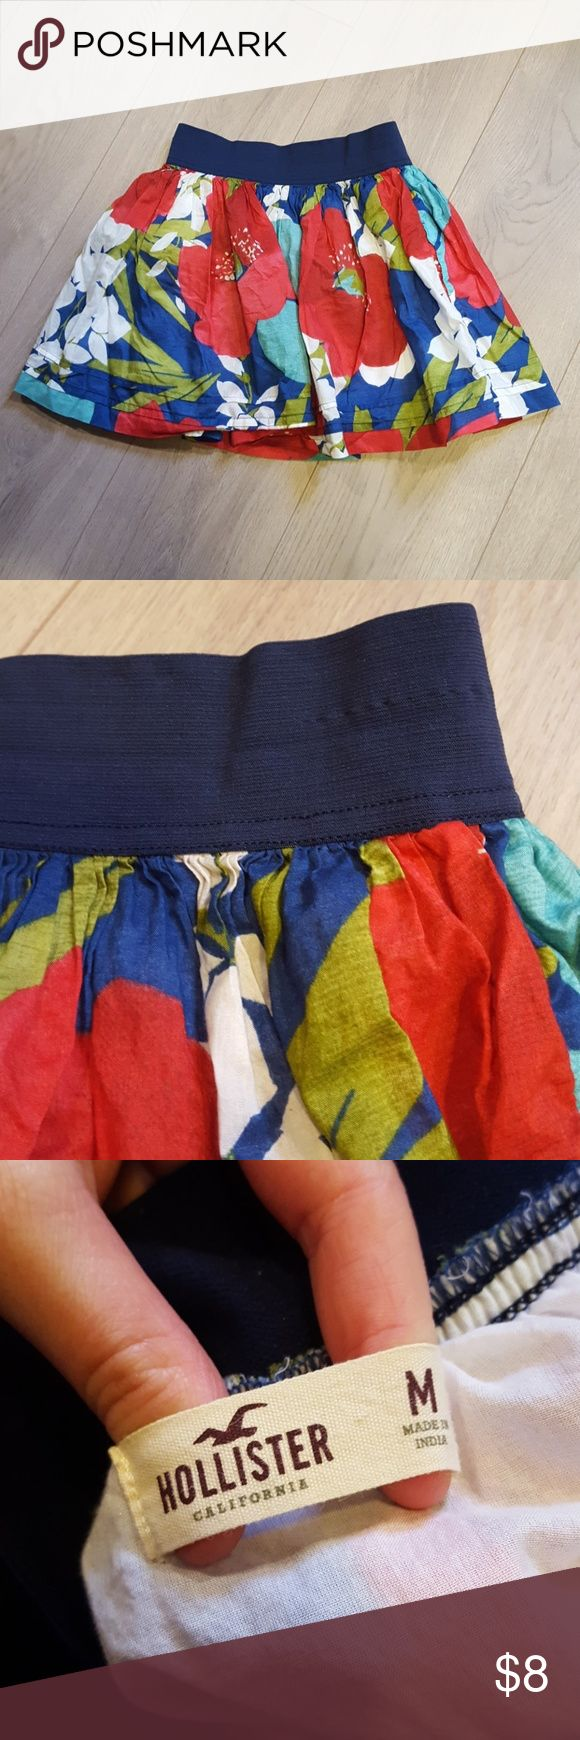 Hollister skirt Never worn skirt. Without tags. Like new condition. Hollister Skirts Mini